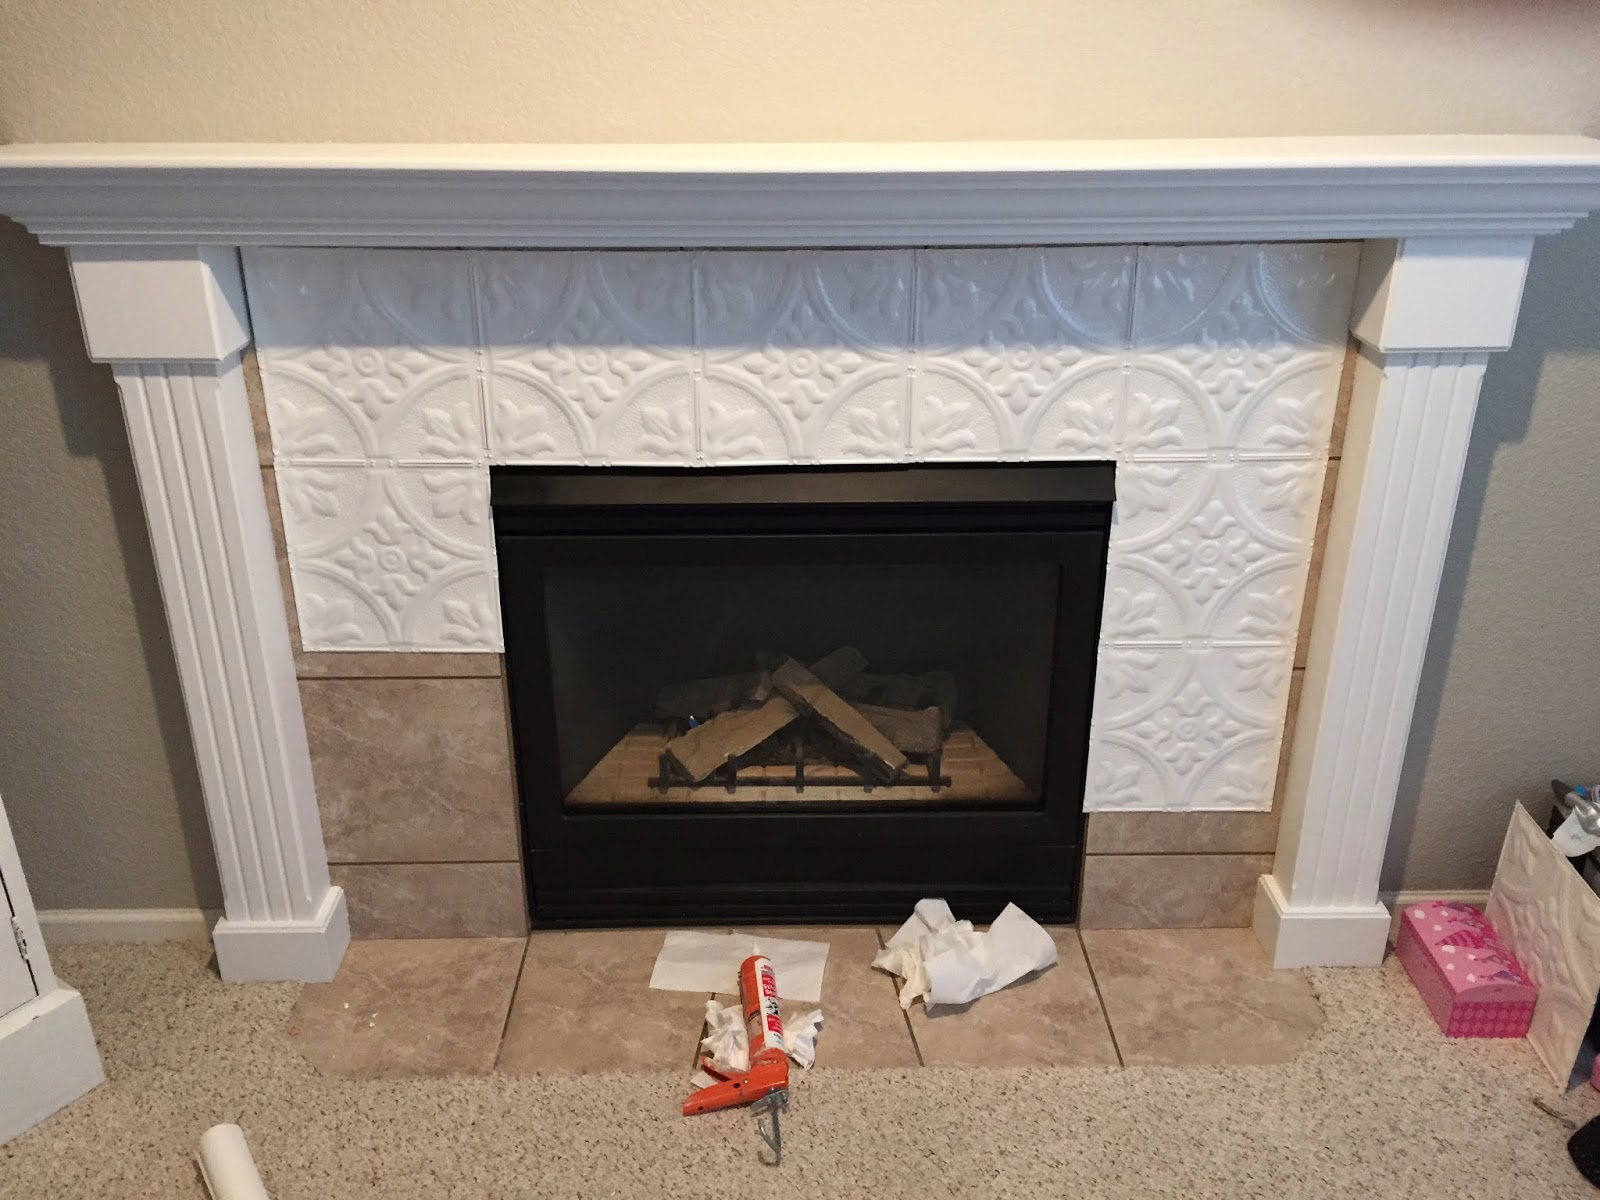 Heat Resistant Paint Fireplace Naughton Your Life Fireplace Makeover With Tin Tile